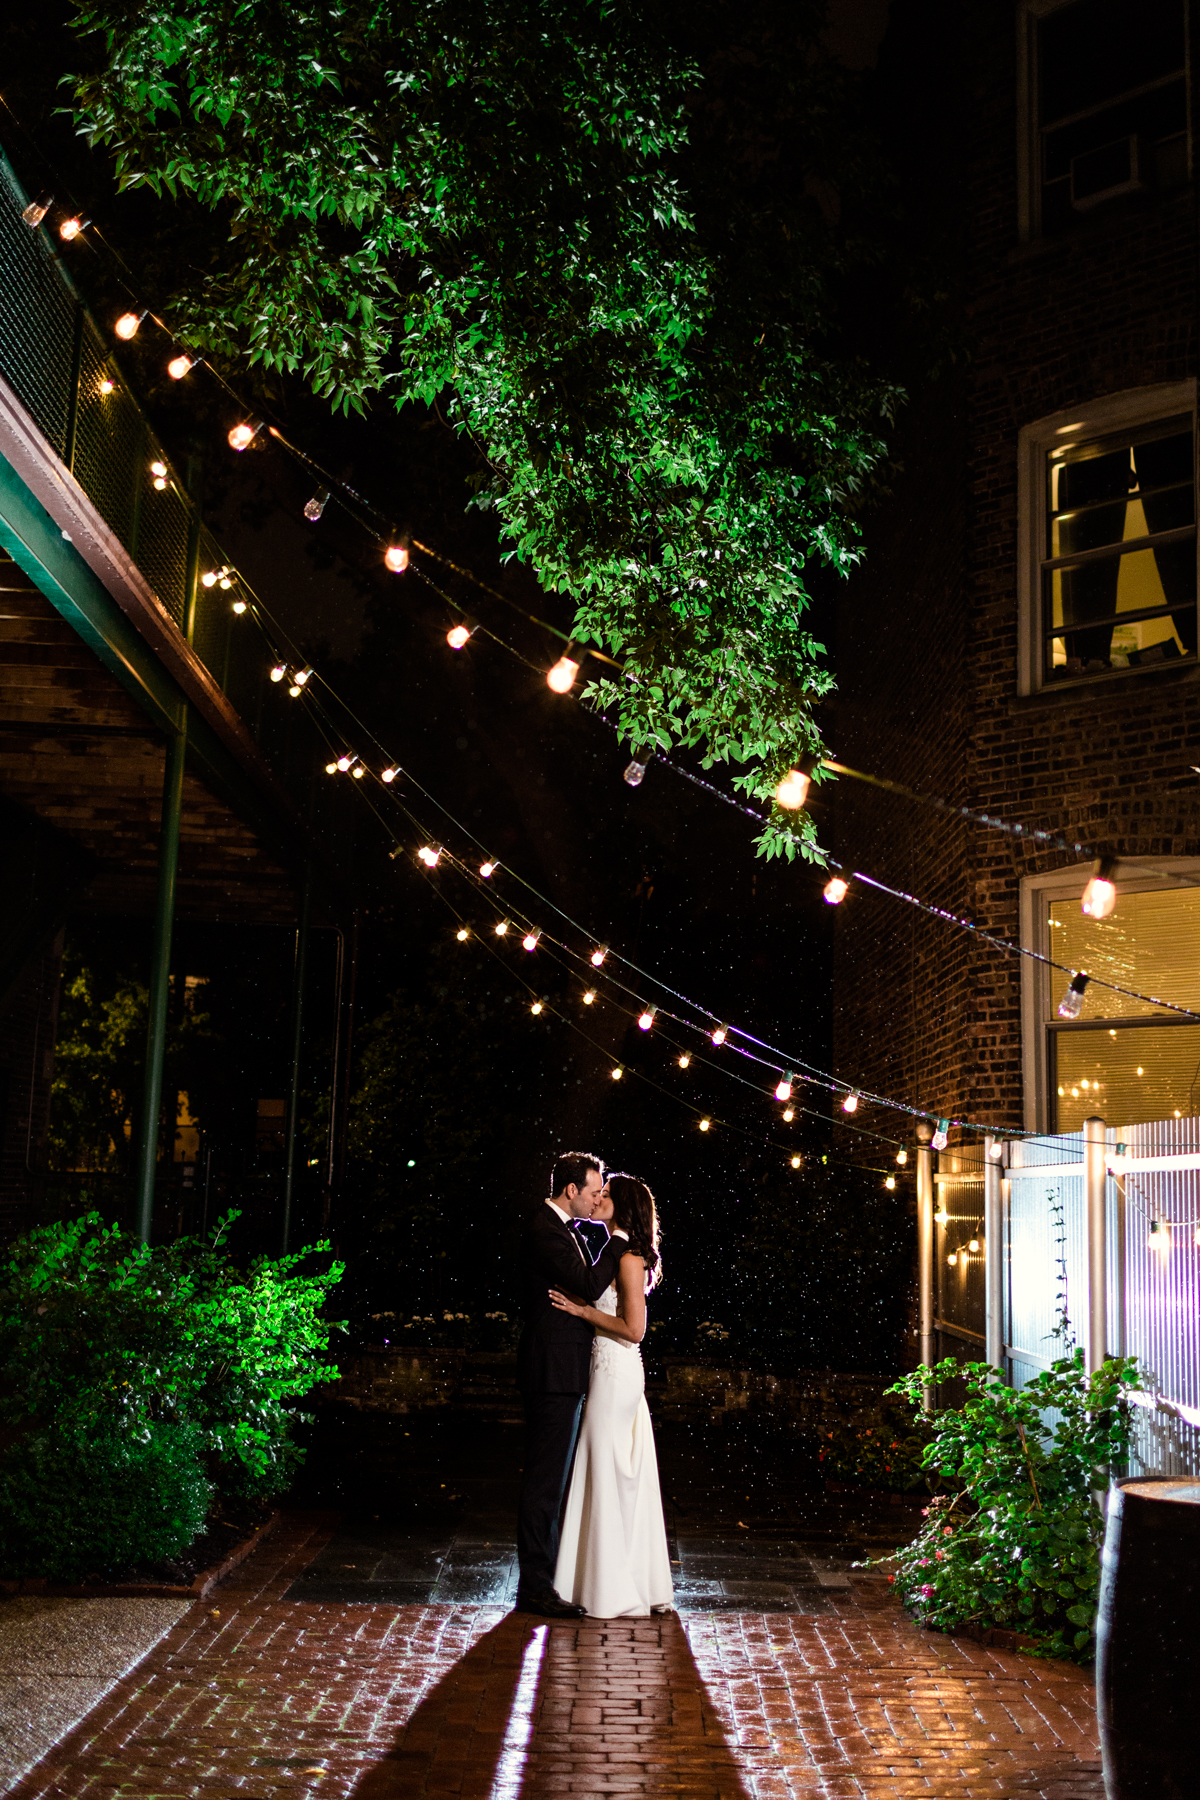 Firehouse-Chicago-wedding-by-Emma-Mullins-Photography-3